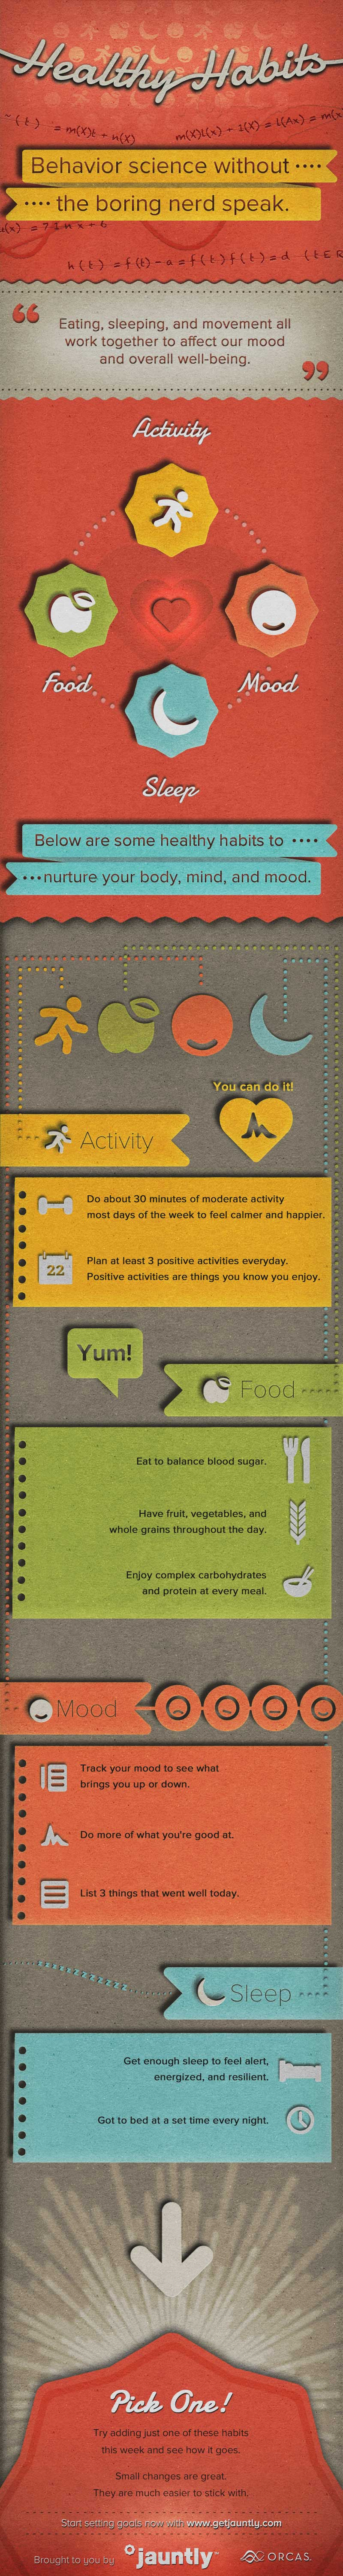 Healthy-habits--jauntly_5029189015b28